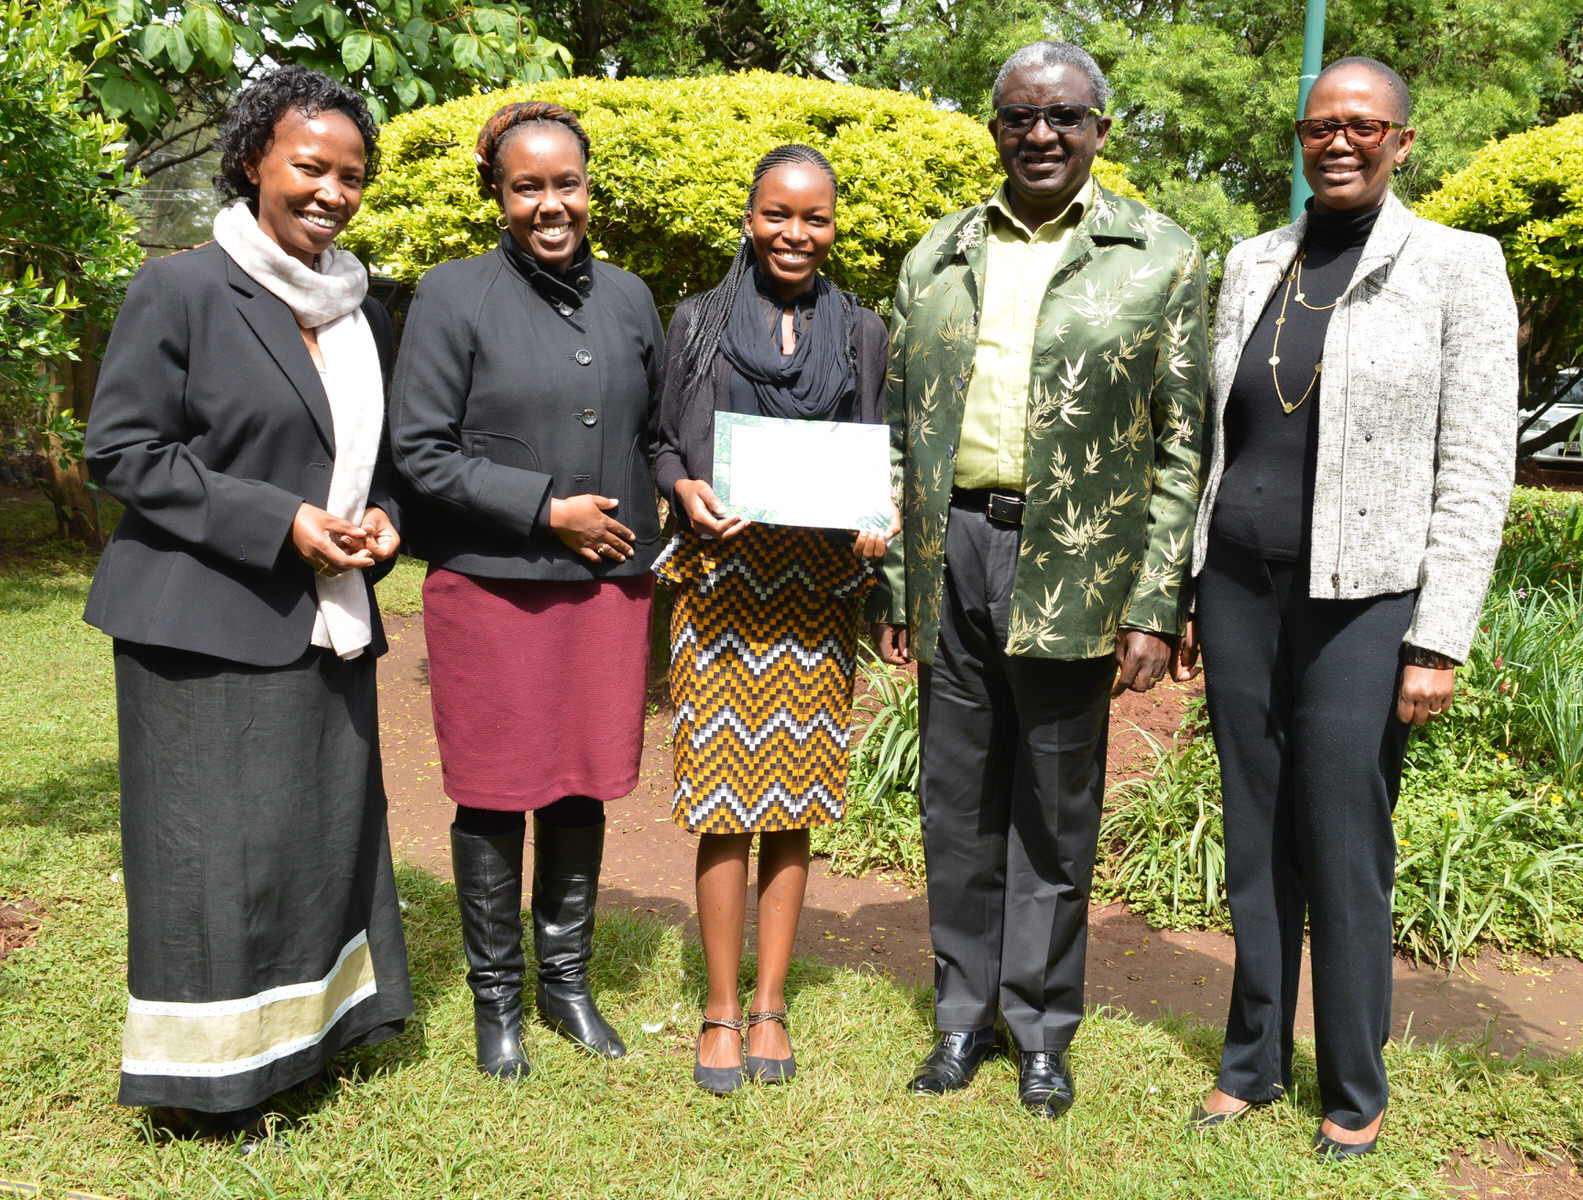 From left - Janet Mawiyoo CEO KCDF, Mwihaki Muraguri Senior Associate Director of Rockefeller Foundation Africa Regional Office,Claire Nasike Akello third recipient, Dr. Isaac Kalua Founder Green Africa Foundation and Wanjira Mathai Chair Green Belt Movement.